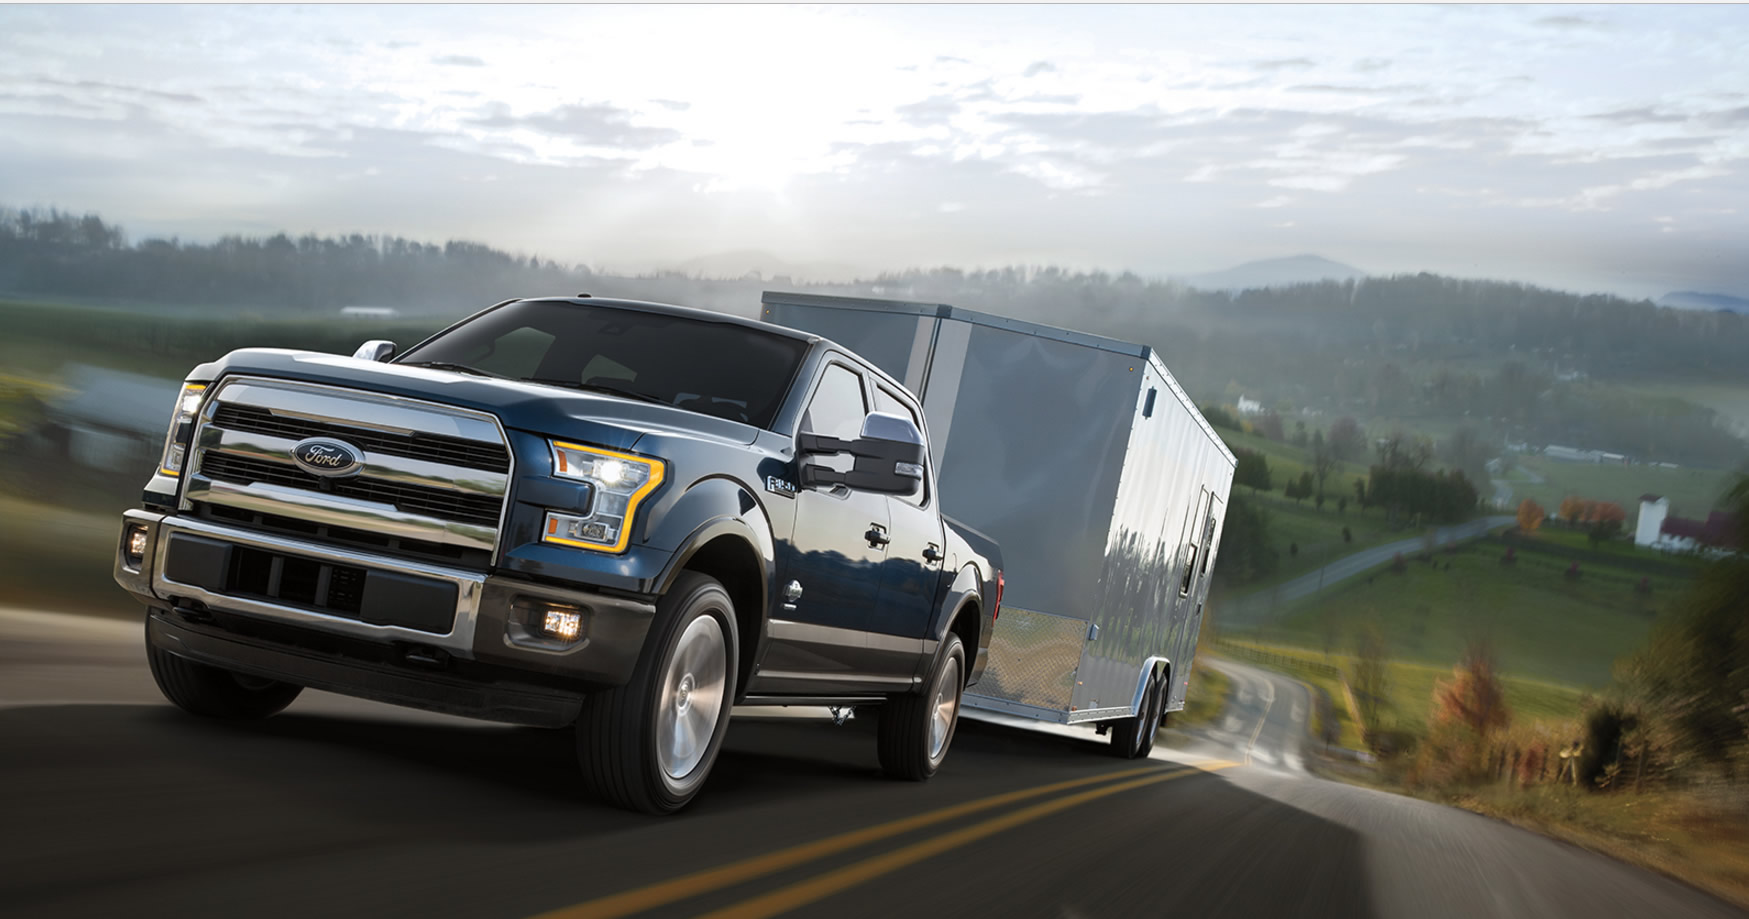 used ford f150 vehicles seattle and renton